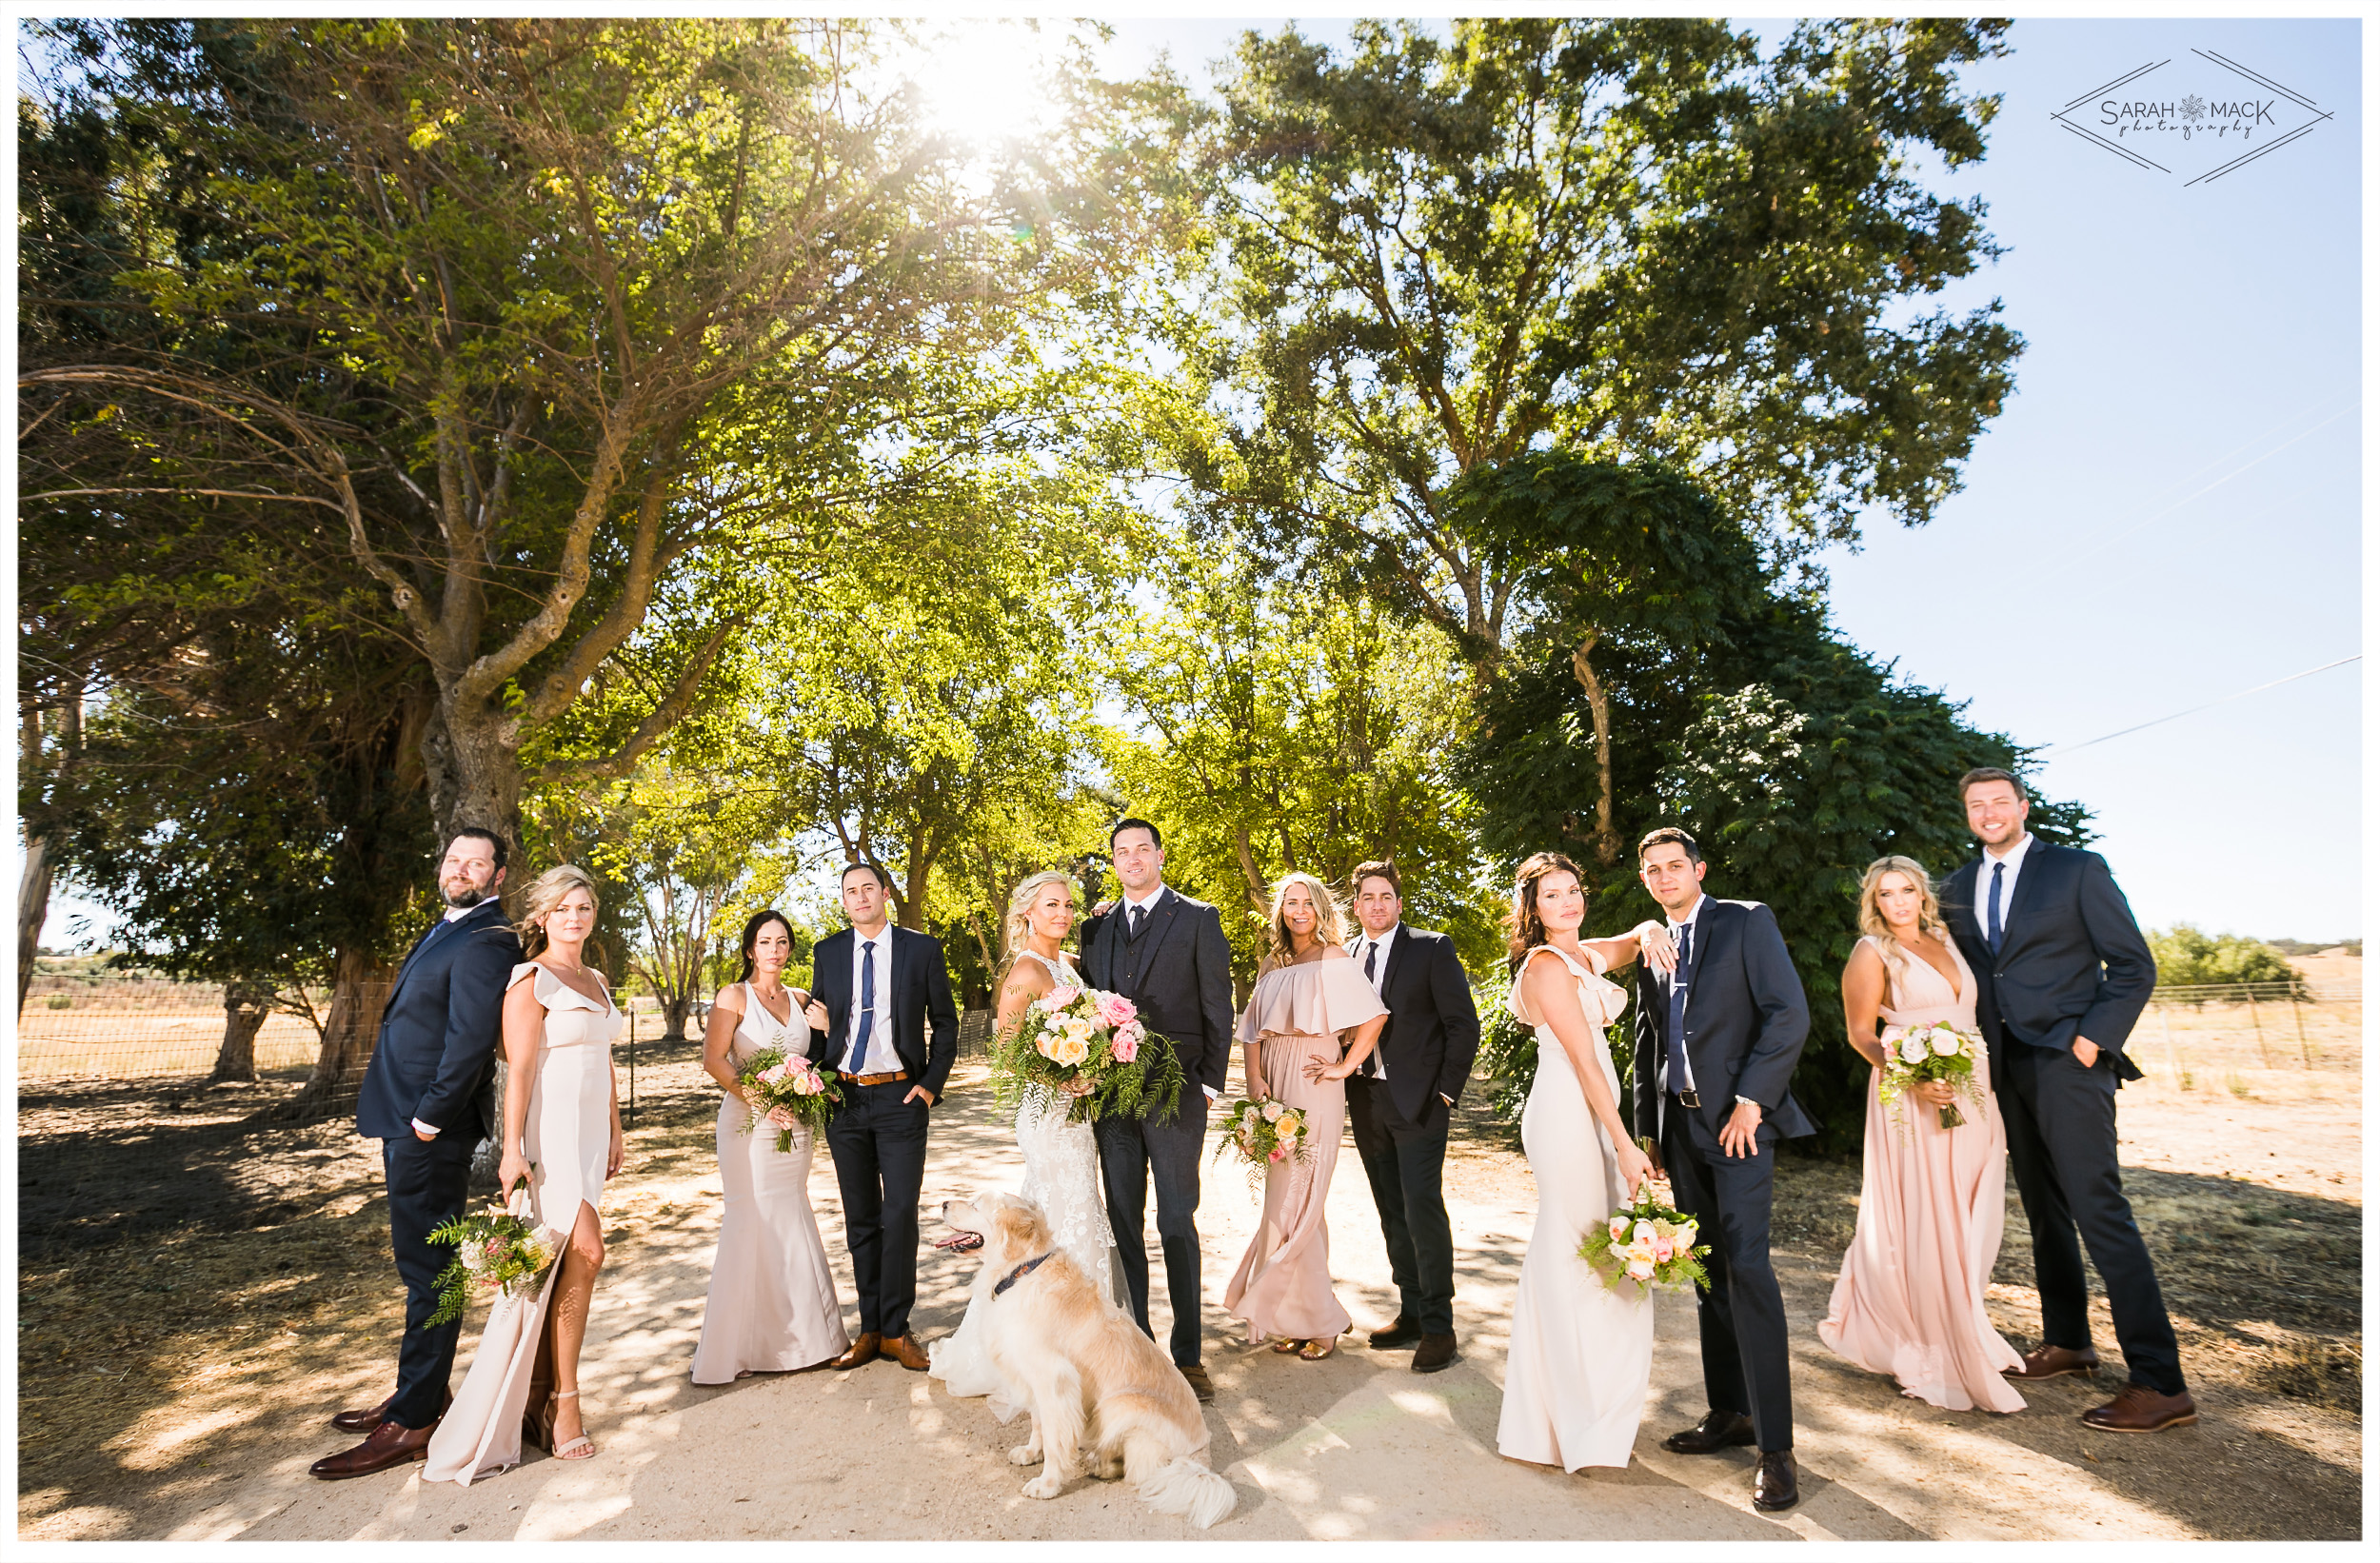 MA-Chandler-Ranch-Paso-Robles-Wedding-Photography-59.jpg